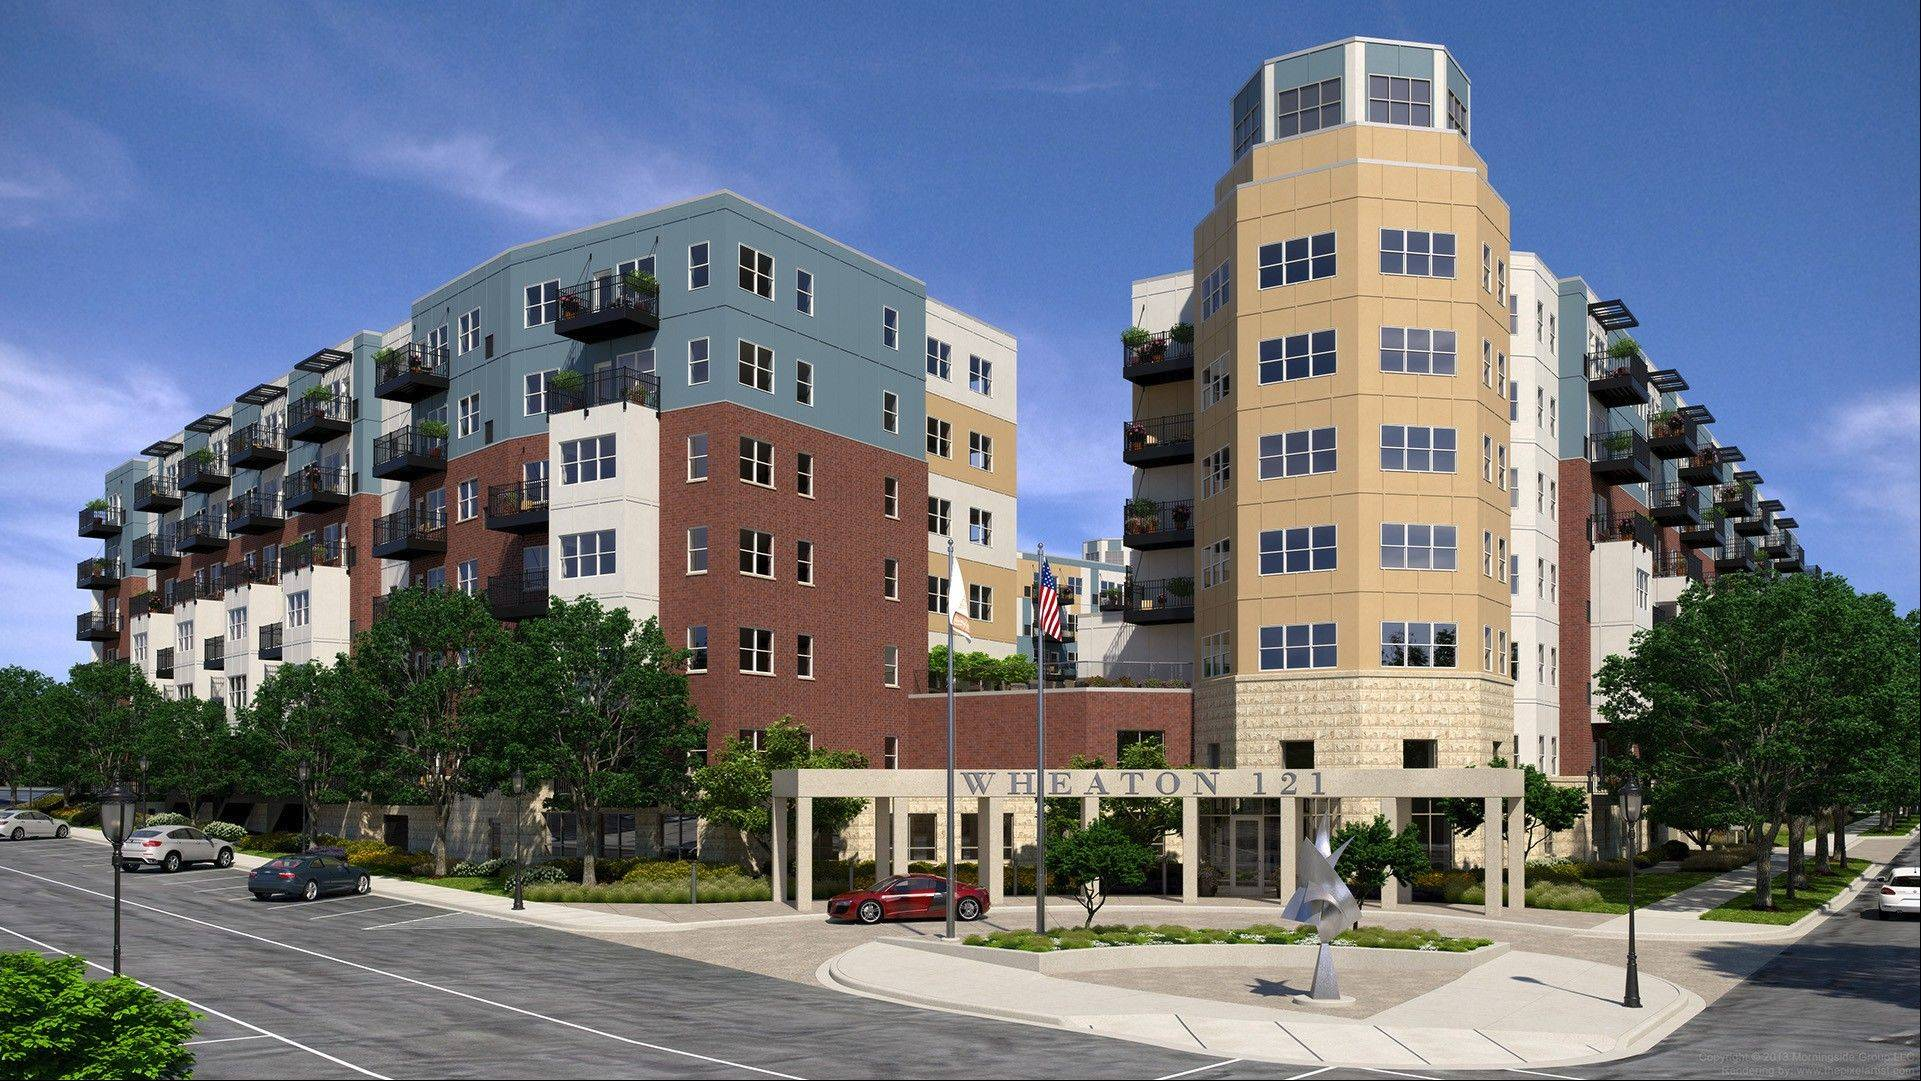 The first of more than 300 families have begun moving into the new downtown Wheaton 121 luxury apartment development. It's slated for completion next spring.